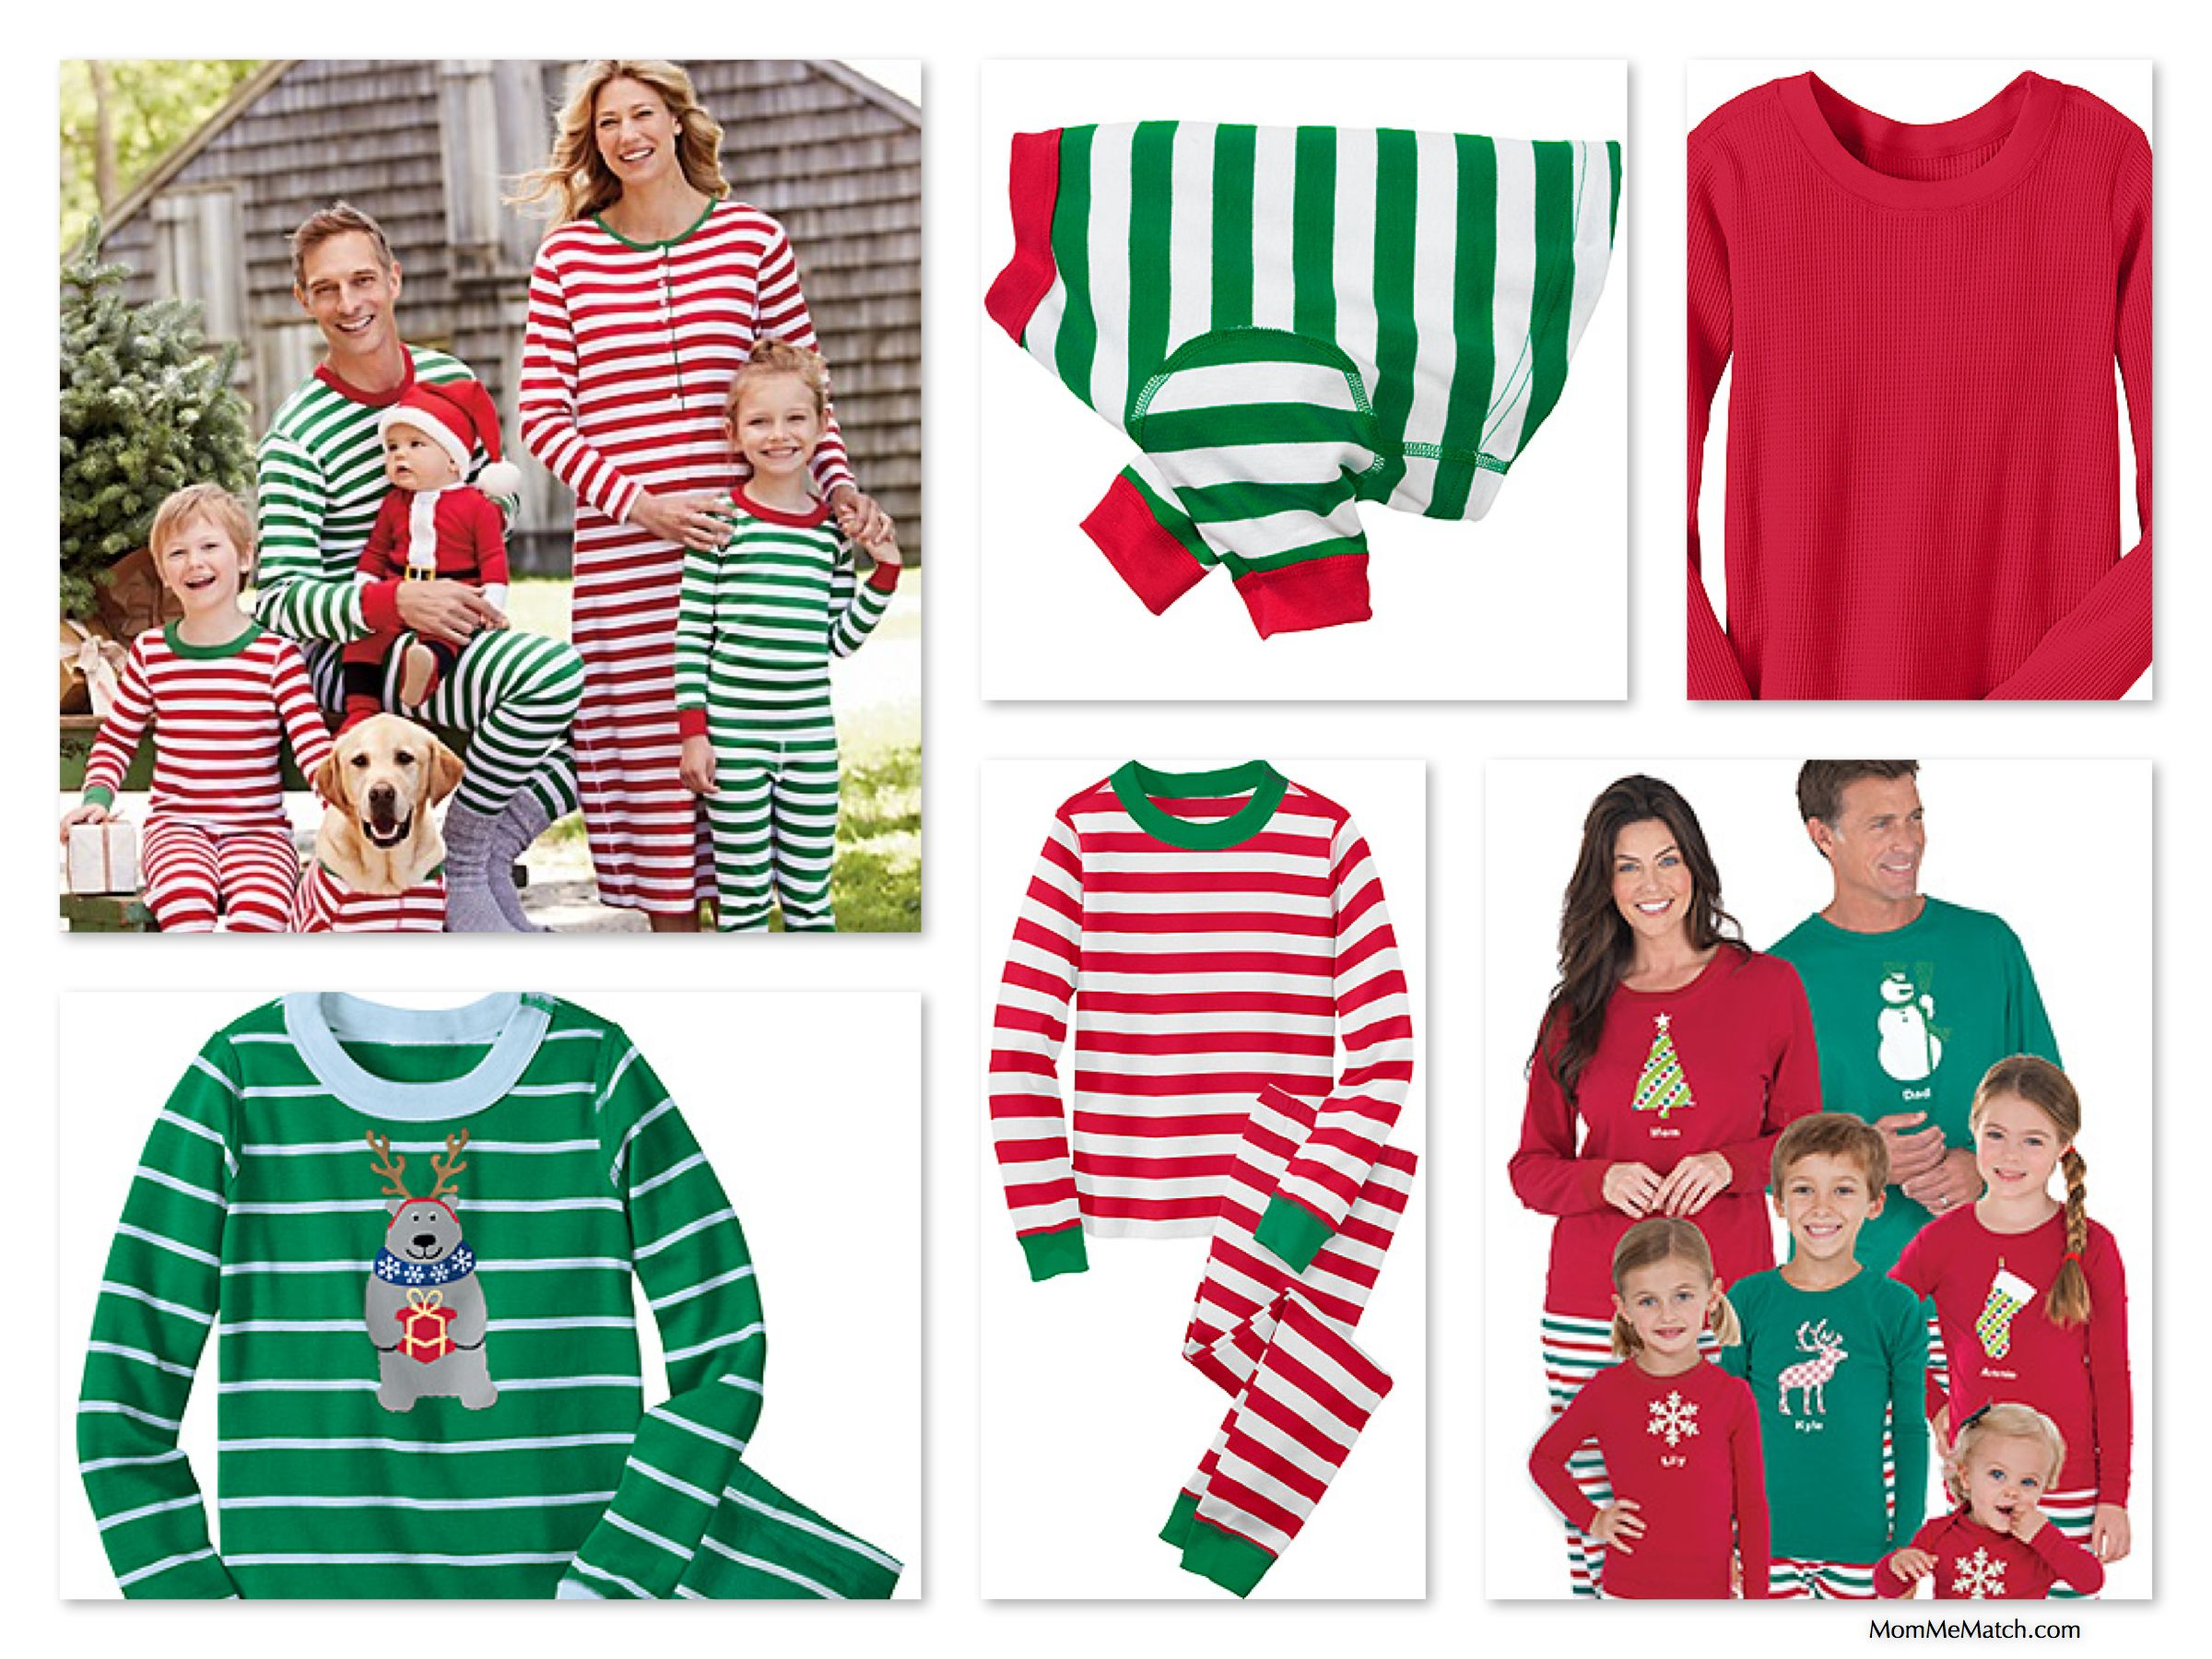 Red   Green Striped Family Christmas Pajamas like those featured in the  Viral Video Christmas Card  d6db5dea38d8